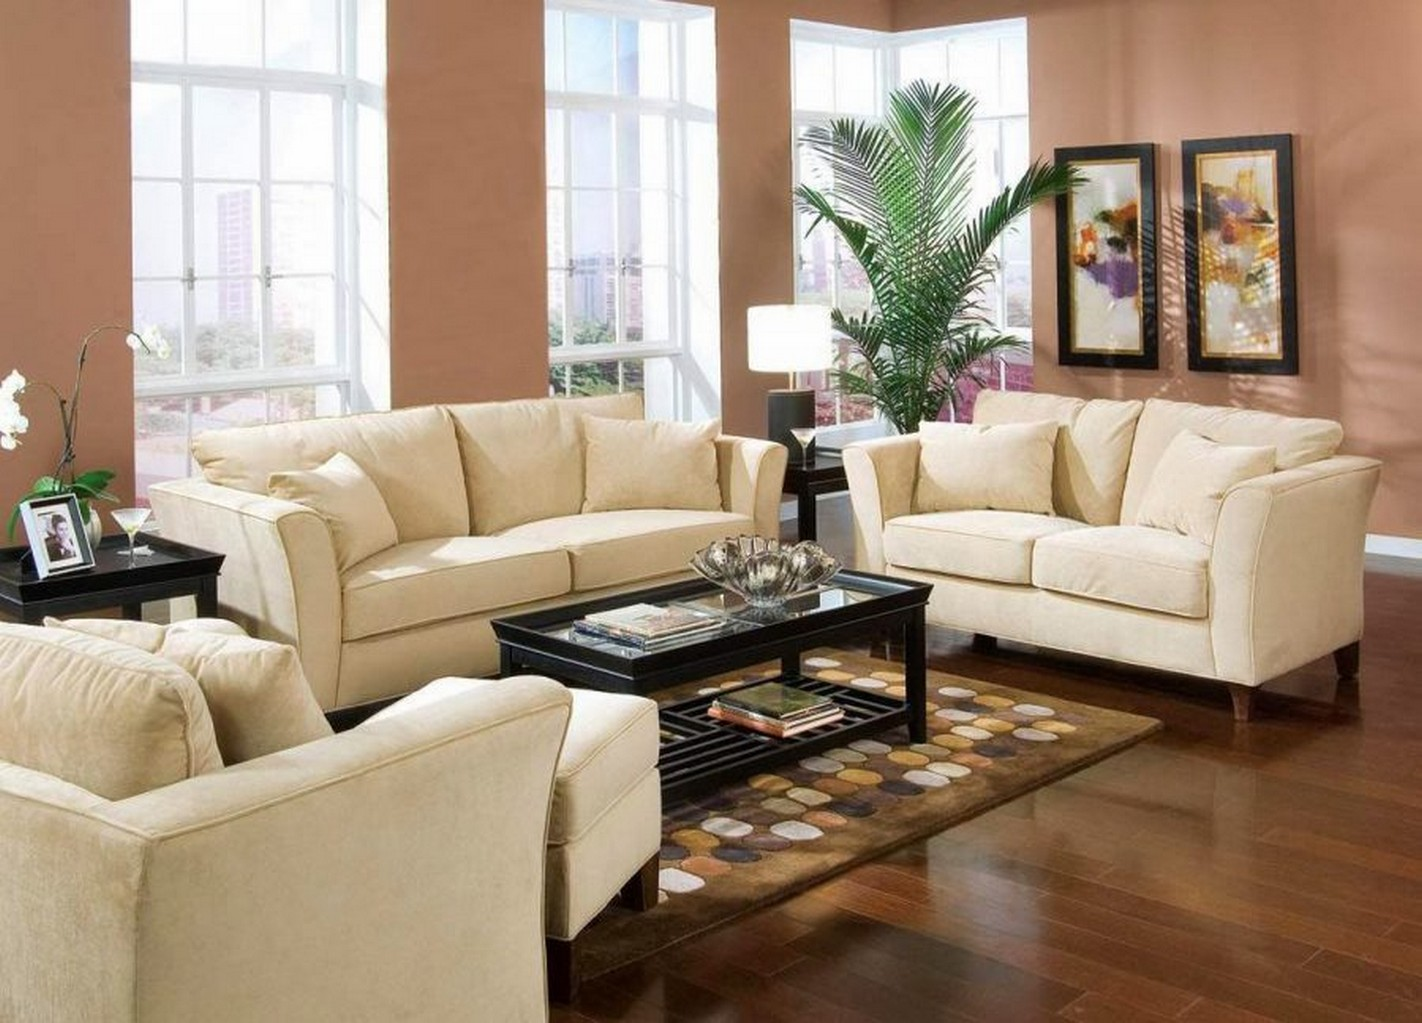 small living room furniture ideas felish home project On living room sofa ideas